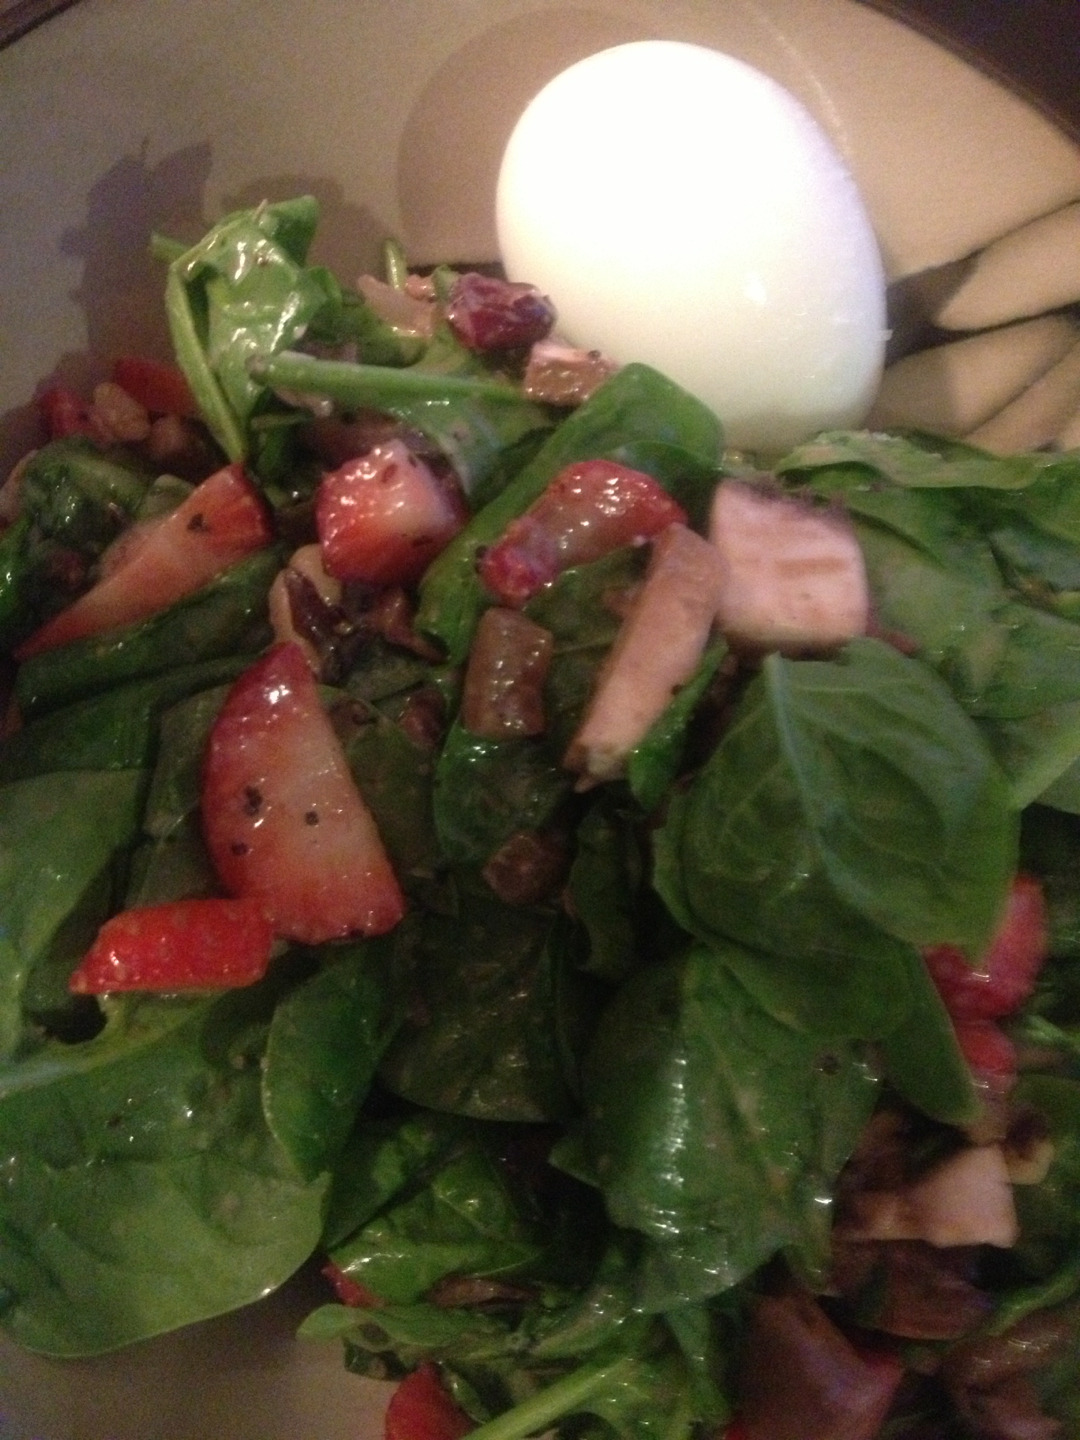 Dinner for today. Strawberry walnut and portobello salad with goat cheese and sweet onion poppyseed dressing. Soft boiled egg on the side for good measure.